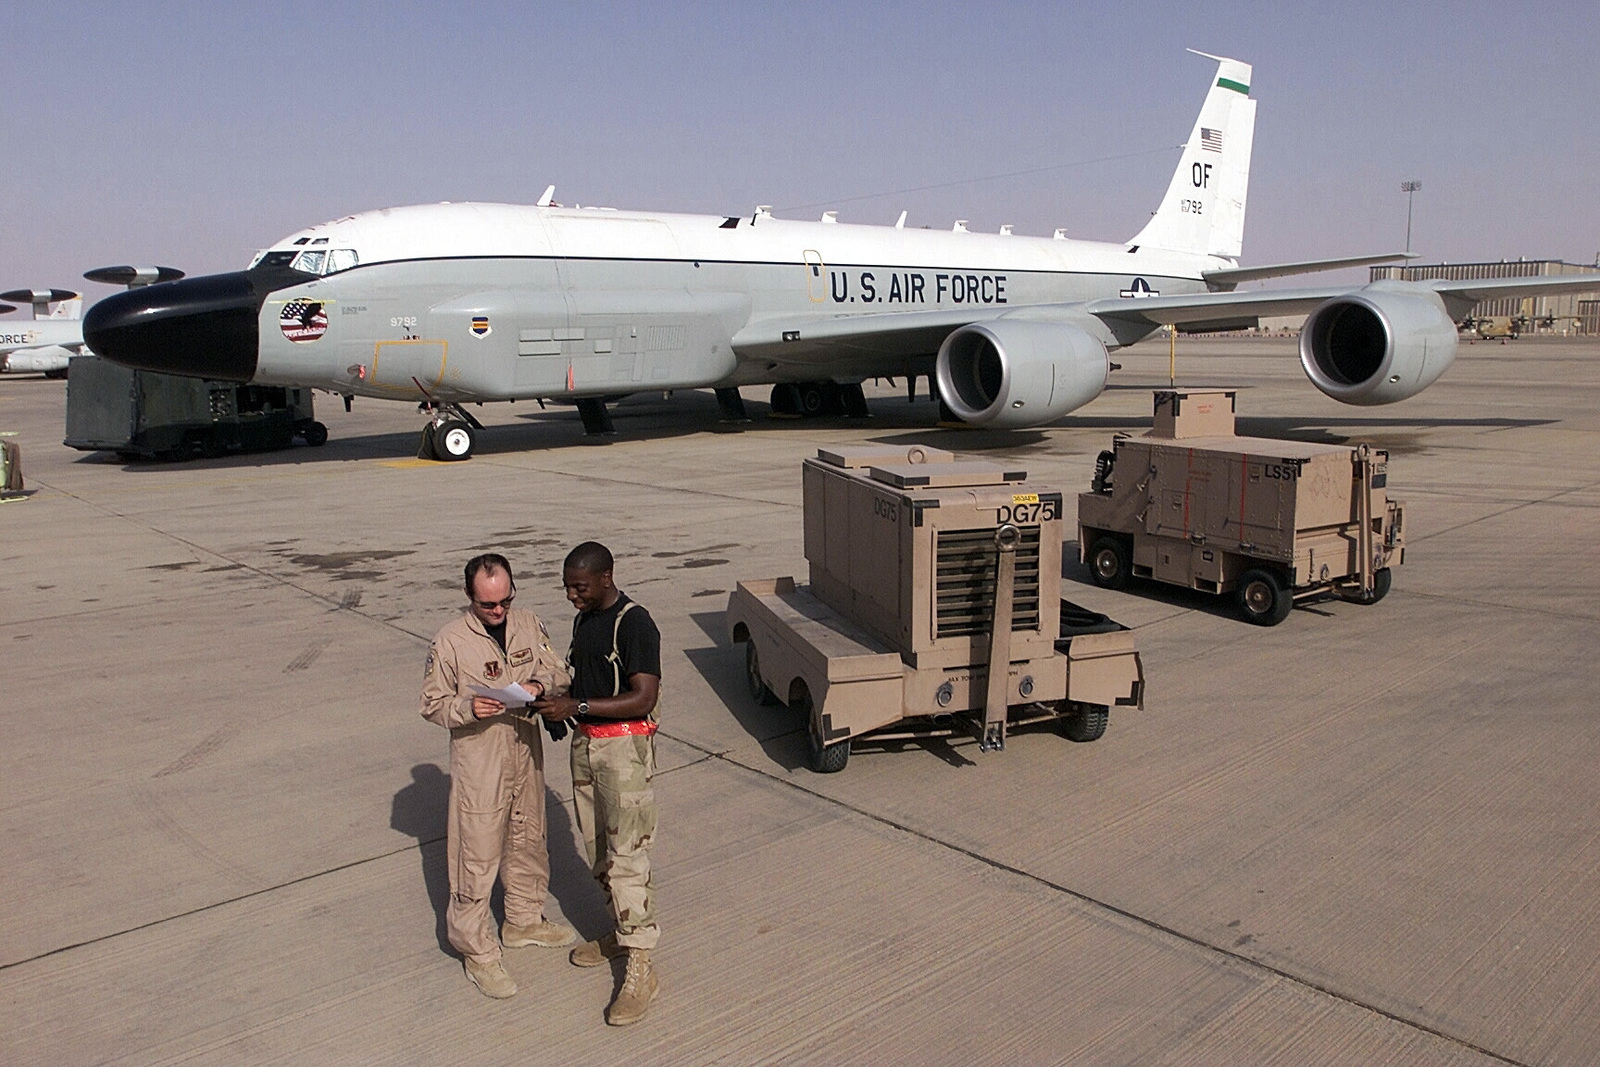 US Air Force (USAF) First Lieutenant (1LT) Dickie Waggoner (left), 763rd Expeditionary Reconnaissance Squadron, and USAF STAFF Sergeant (SSGT) Carlos Bennett Jr., Electrical and Environmental SPECIALIST, discuss the maintenance status of a USAF RJ-135 Embraer aircraft while deployed to Prince Sultan Air Base (AB), Saudi Arabia, in support of Operation SOUTHERN WATCH